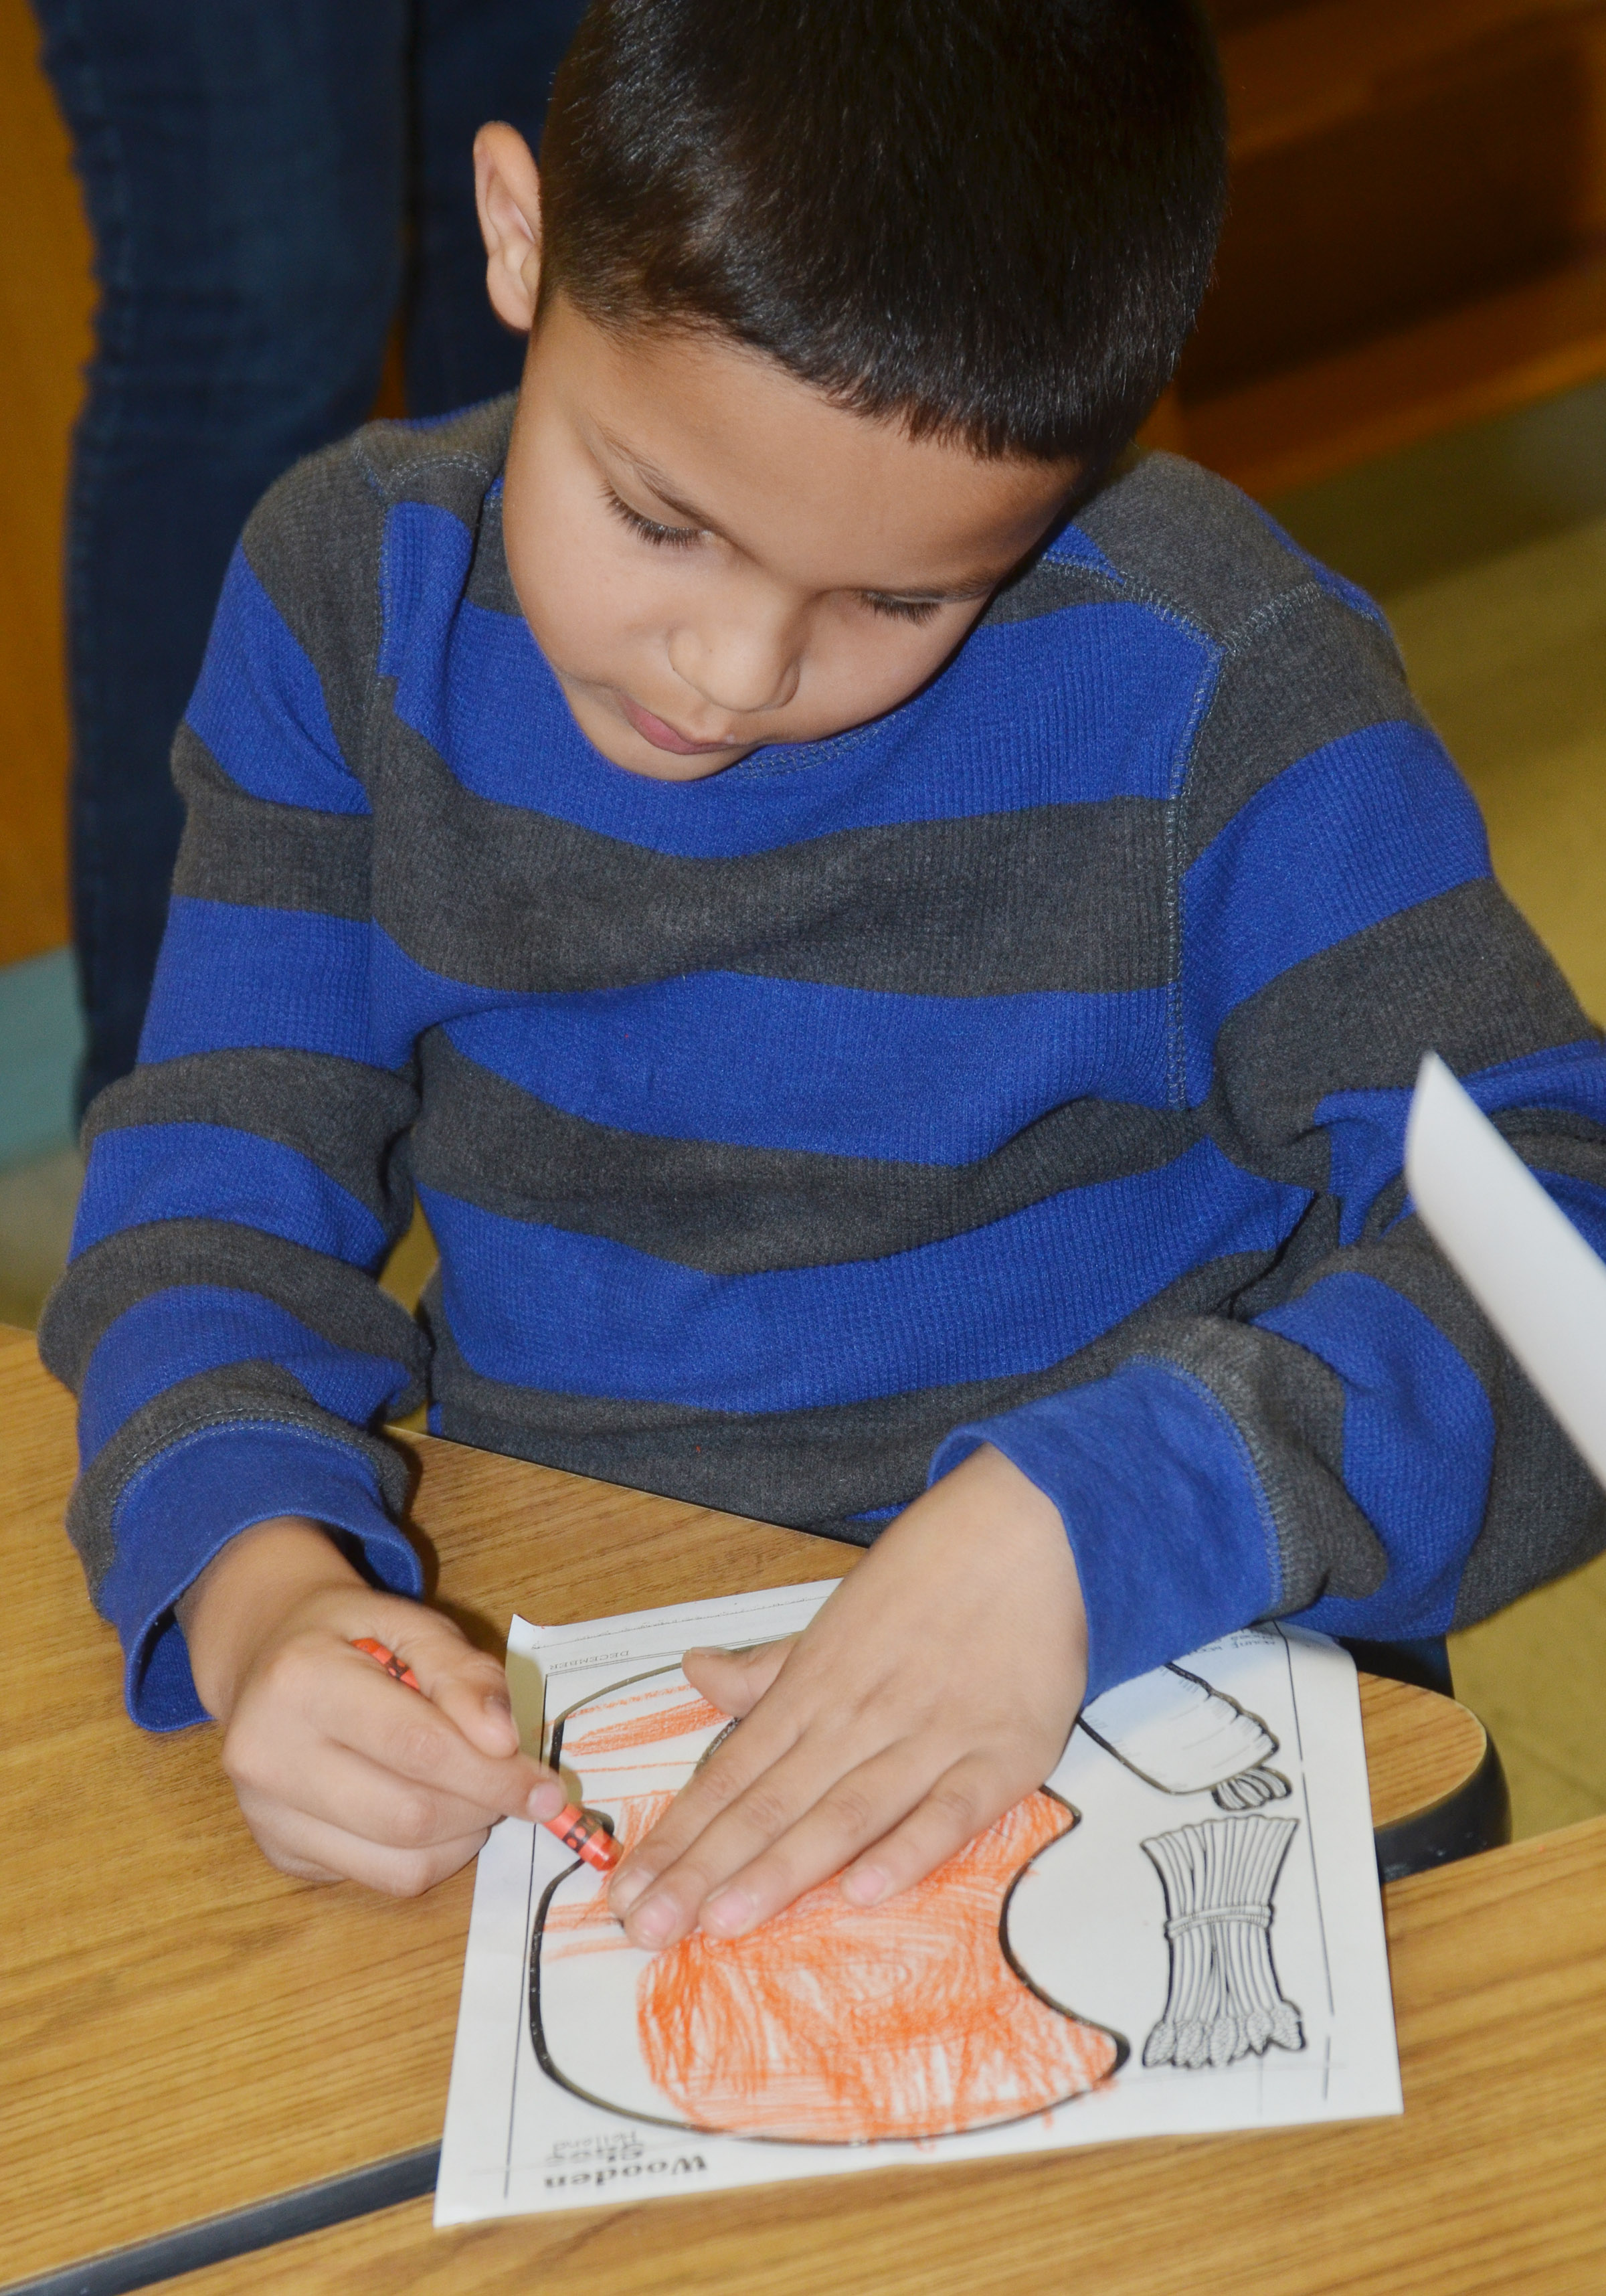 CES second-grader Makyian Bridgewater colors his wooden shoe after learning about the holiday traditions in the Netherlands.